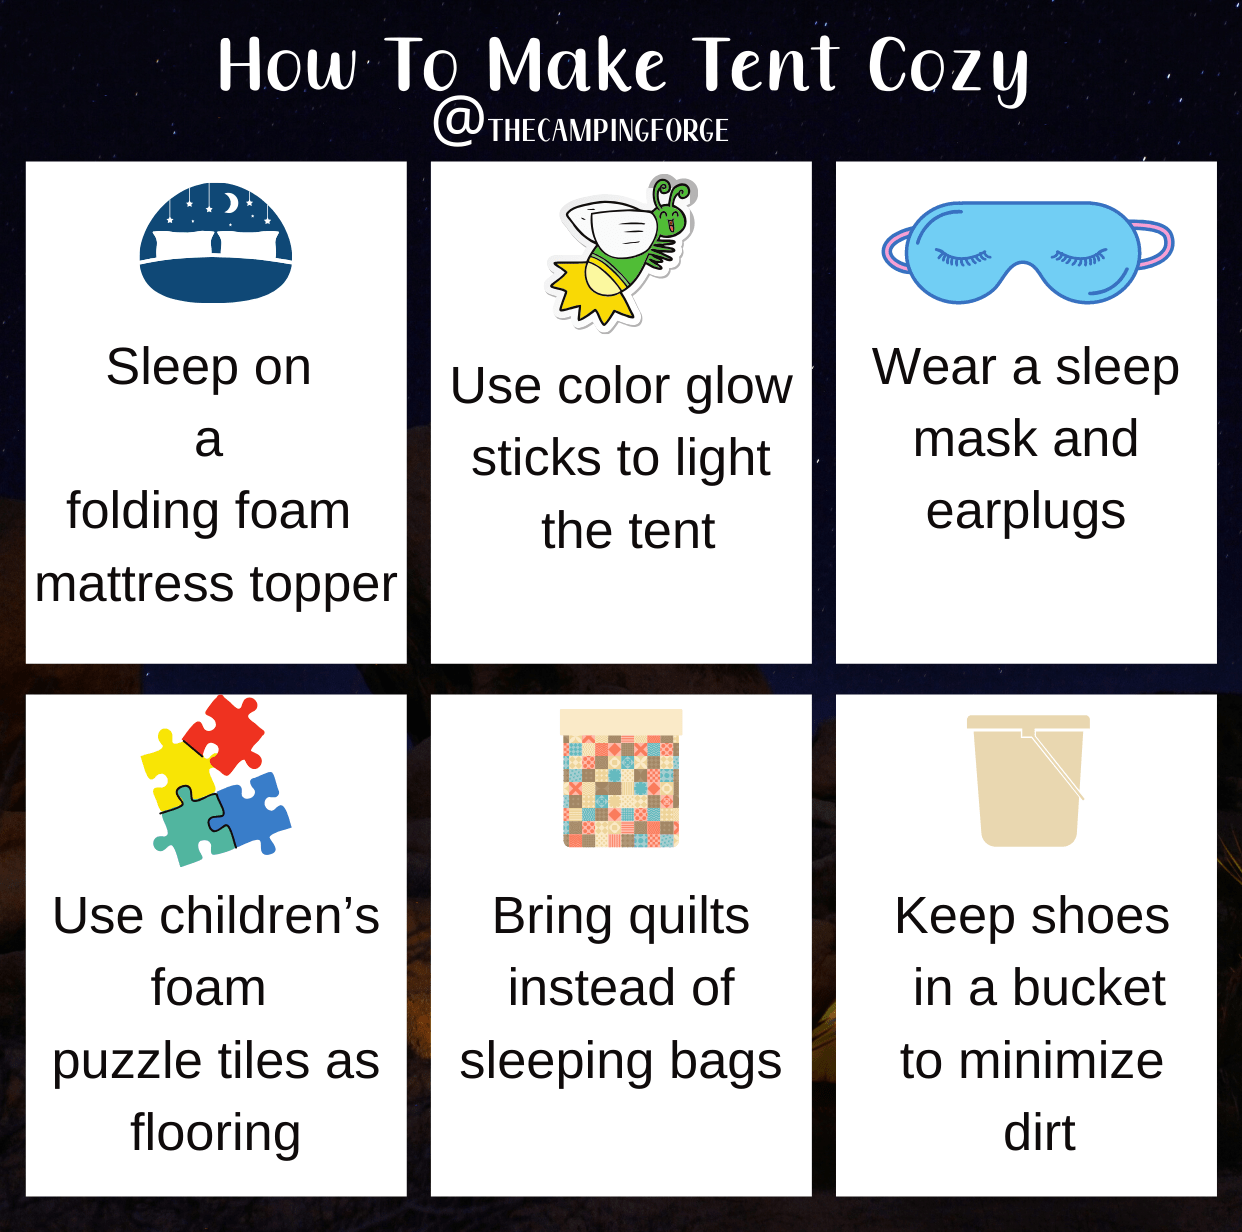 How to keep your tent cozy infographic